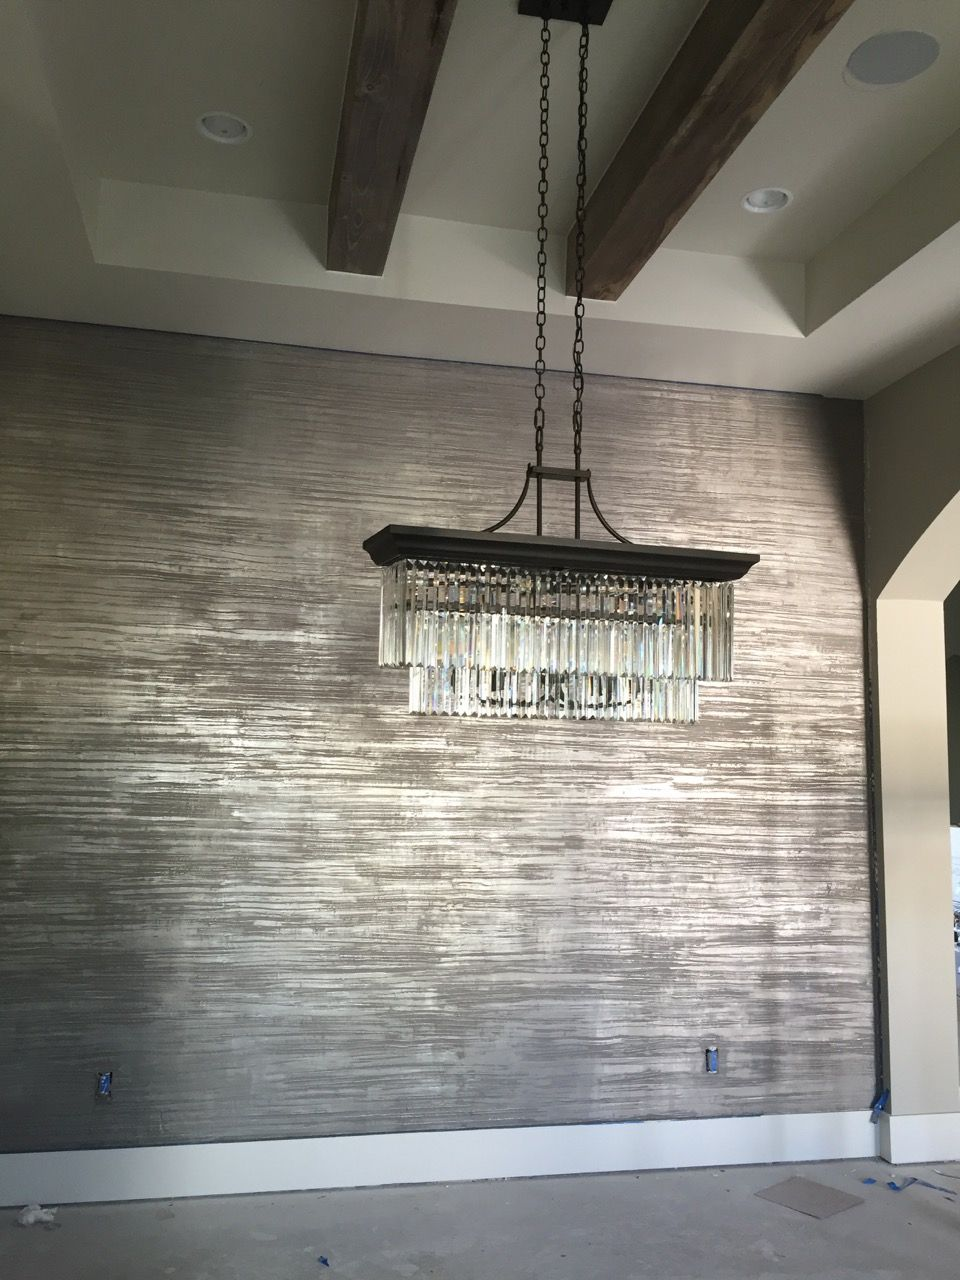 wallpaper ideas for living room feature wall brown paint colors rooms 20 accent you ll surely wish to try this at home bedroom painted wood diy bathroom kitchen shiplap